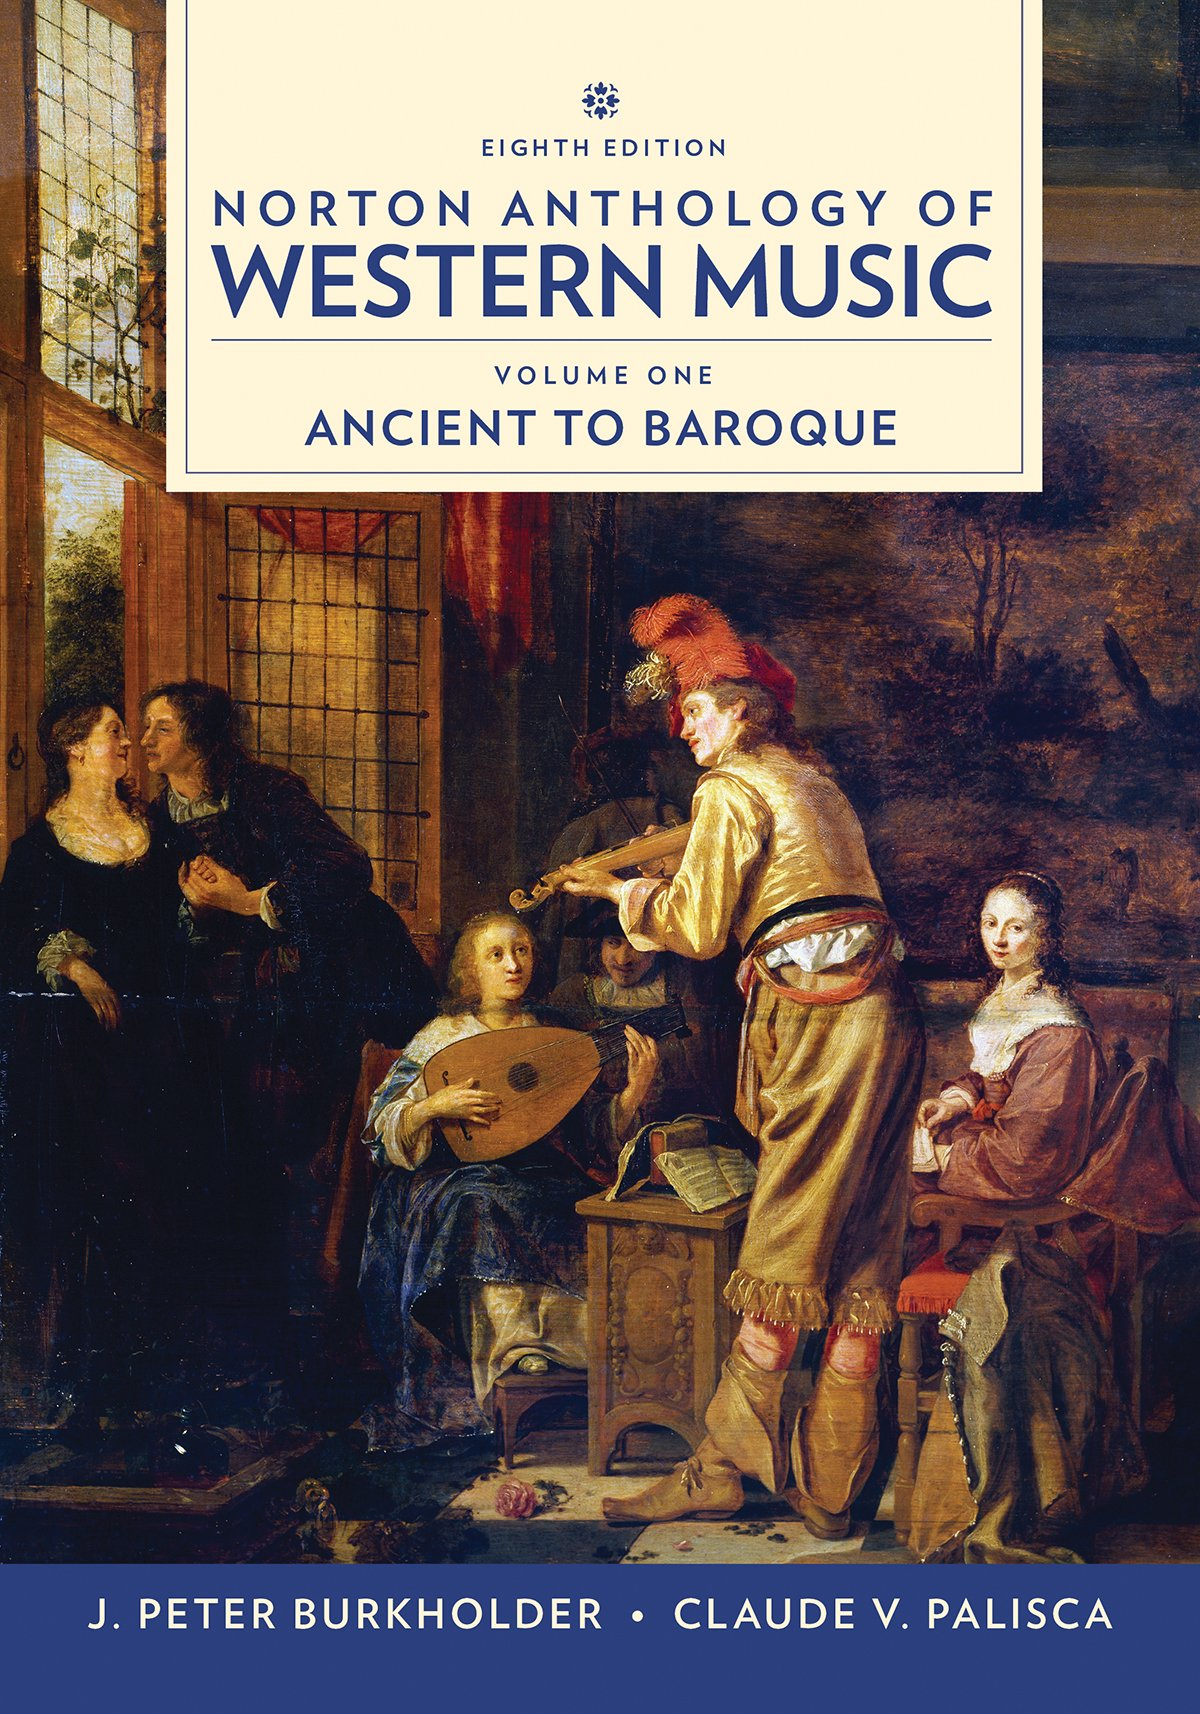 Norton Anthology of Western Music (Eighth Edition)  (Vol. 1: Ancient to Baroque) by W. W. Norton & Company